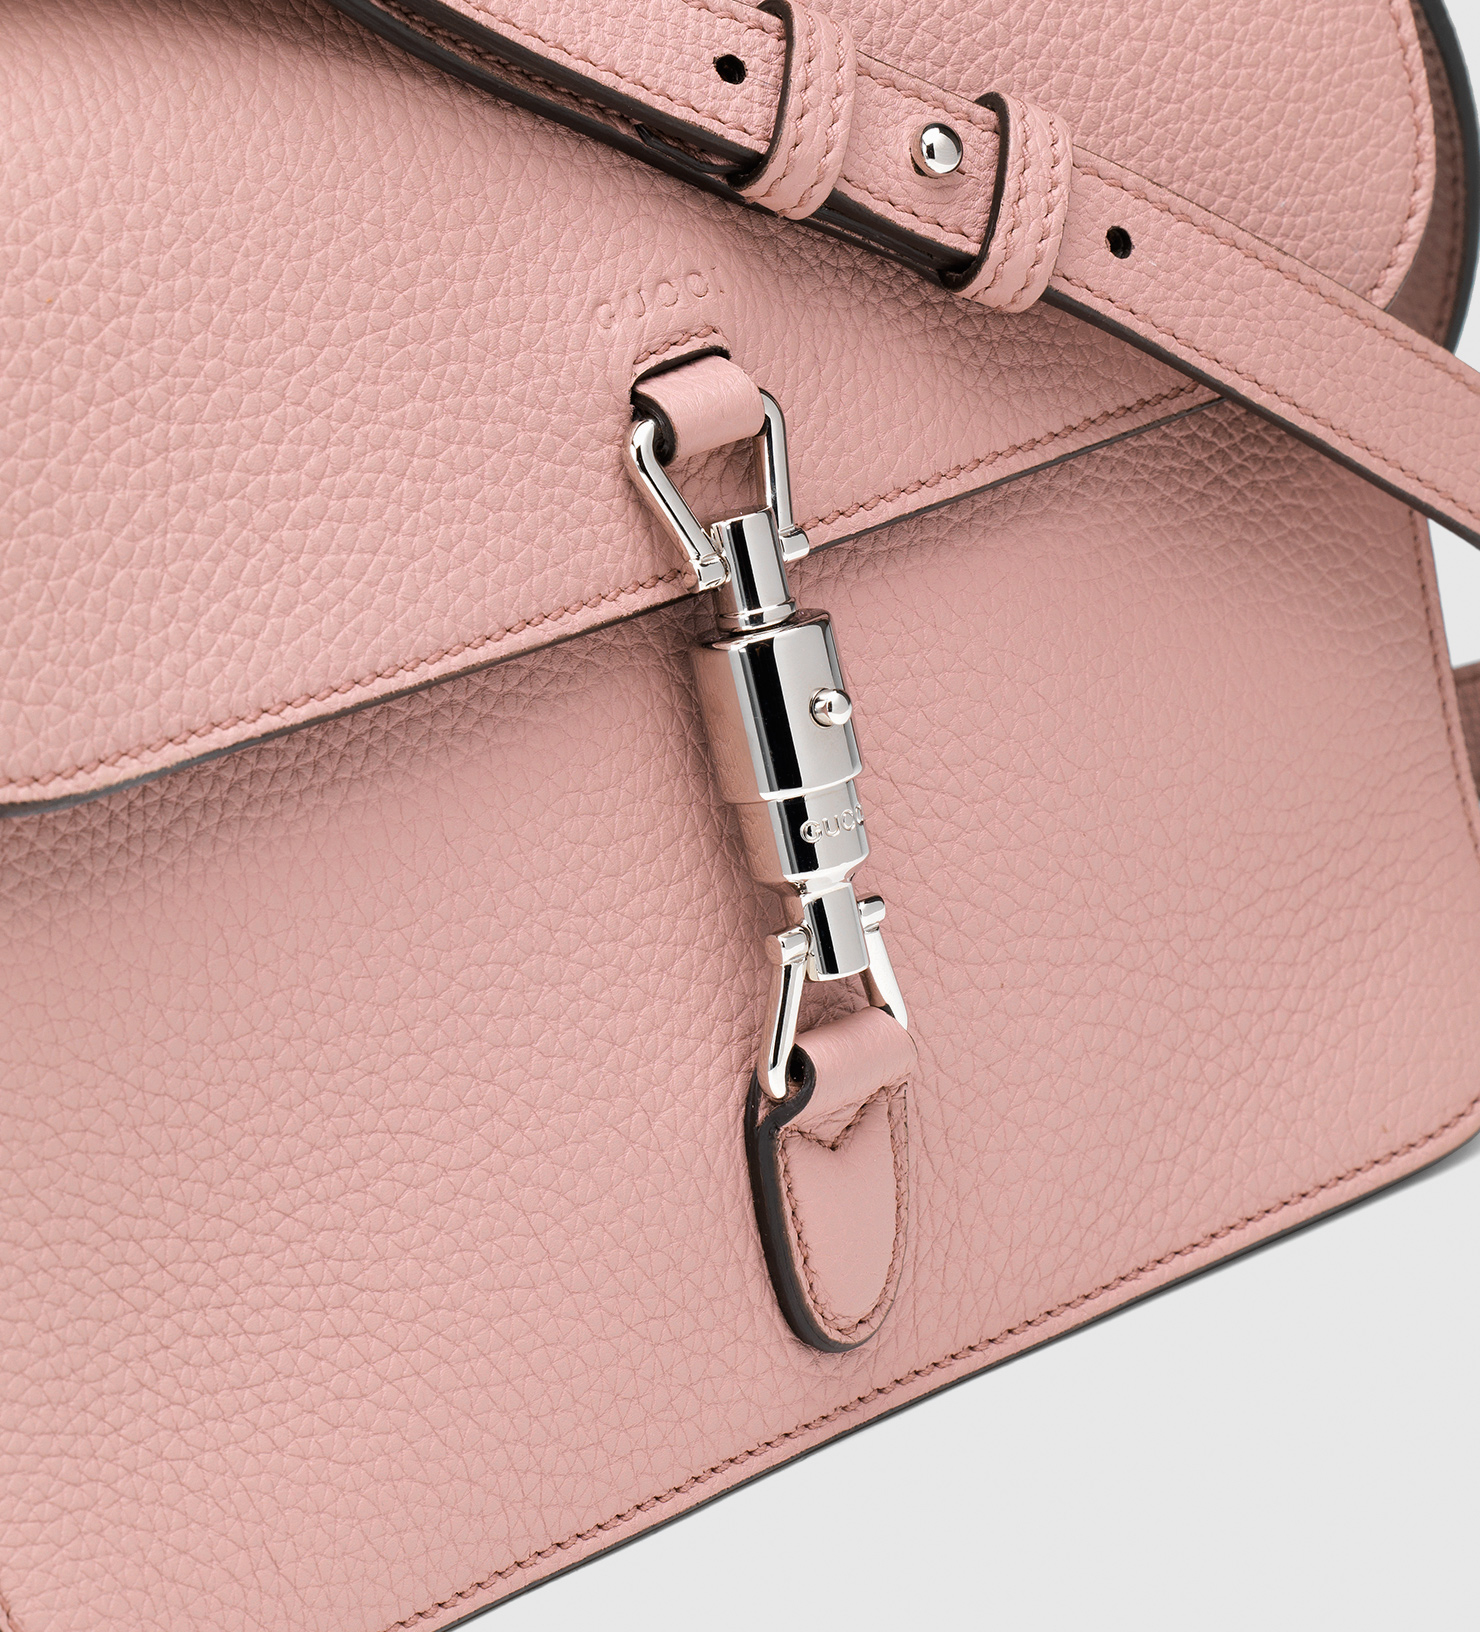 efbb25275dac02 Gucci Jackie Soft Leather Flap Shoulder Bag in Pink - Lyst